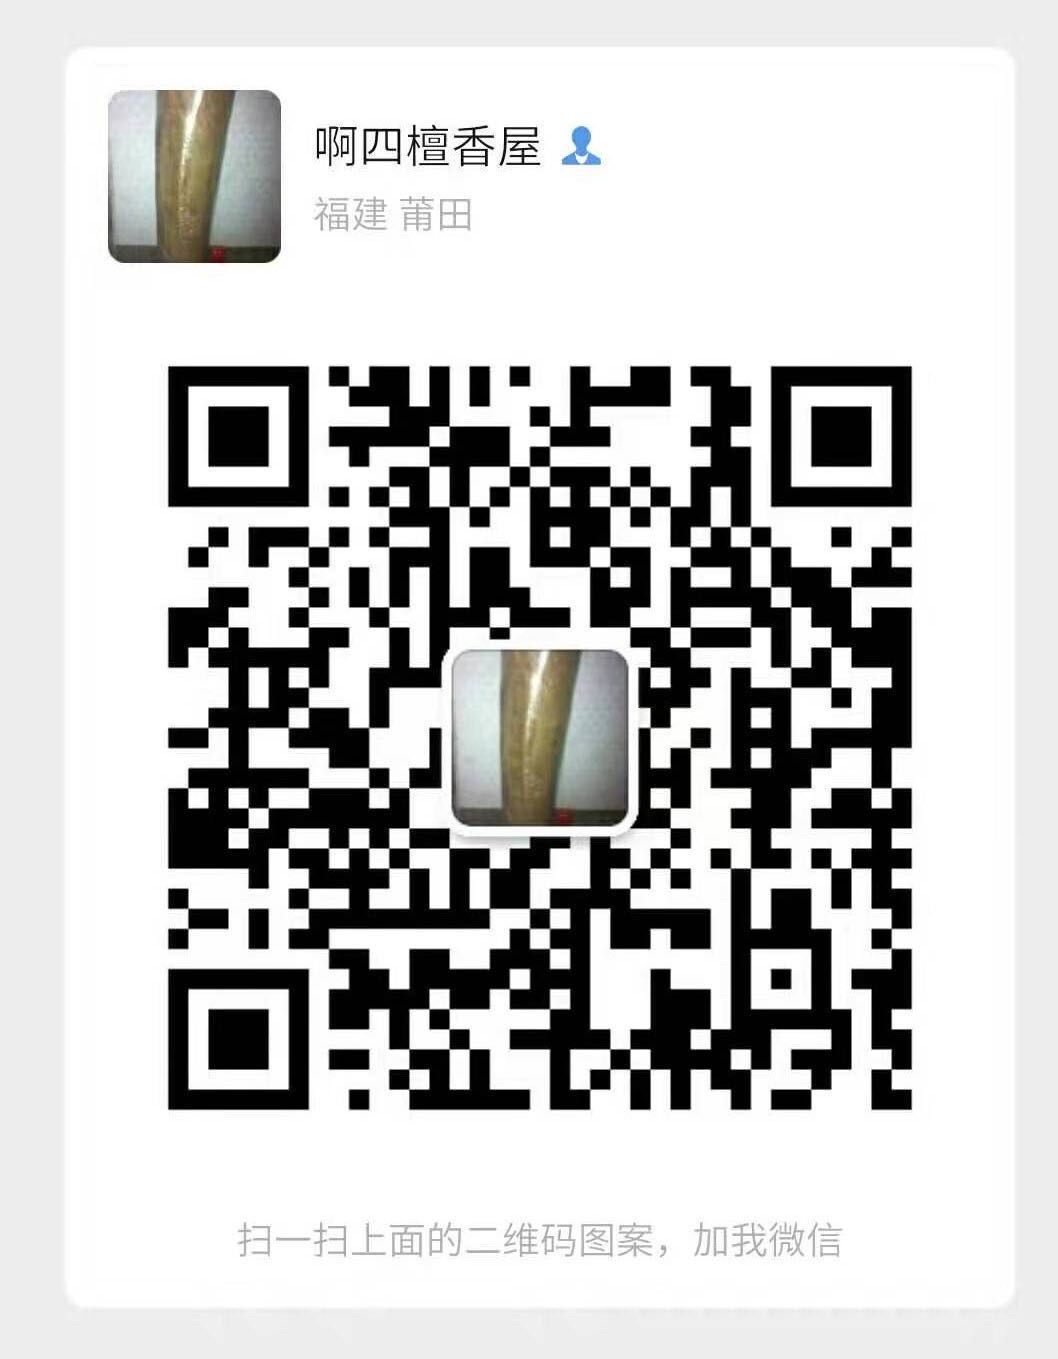 .\..\..\..\..\..\..\AppData\Local\Temp\WeChat Files\f7b2cd9ab4bf0162313d8b6051a0fa5c_.jpg